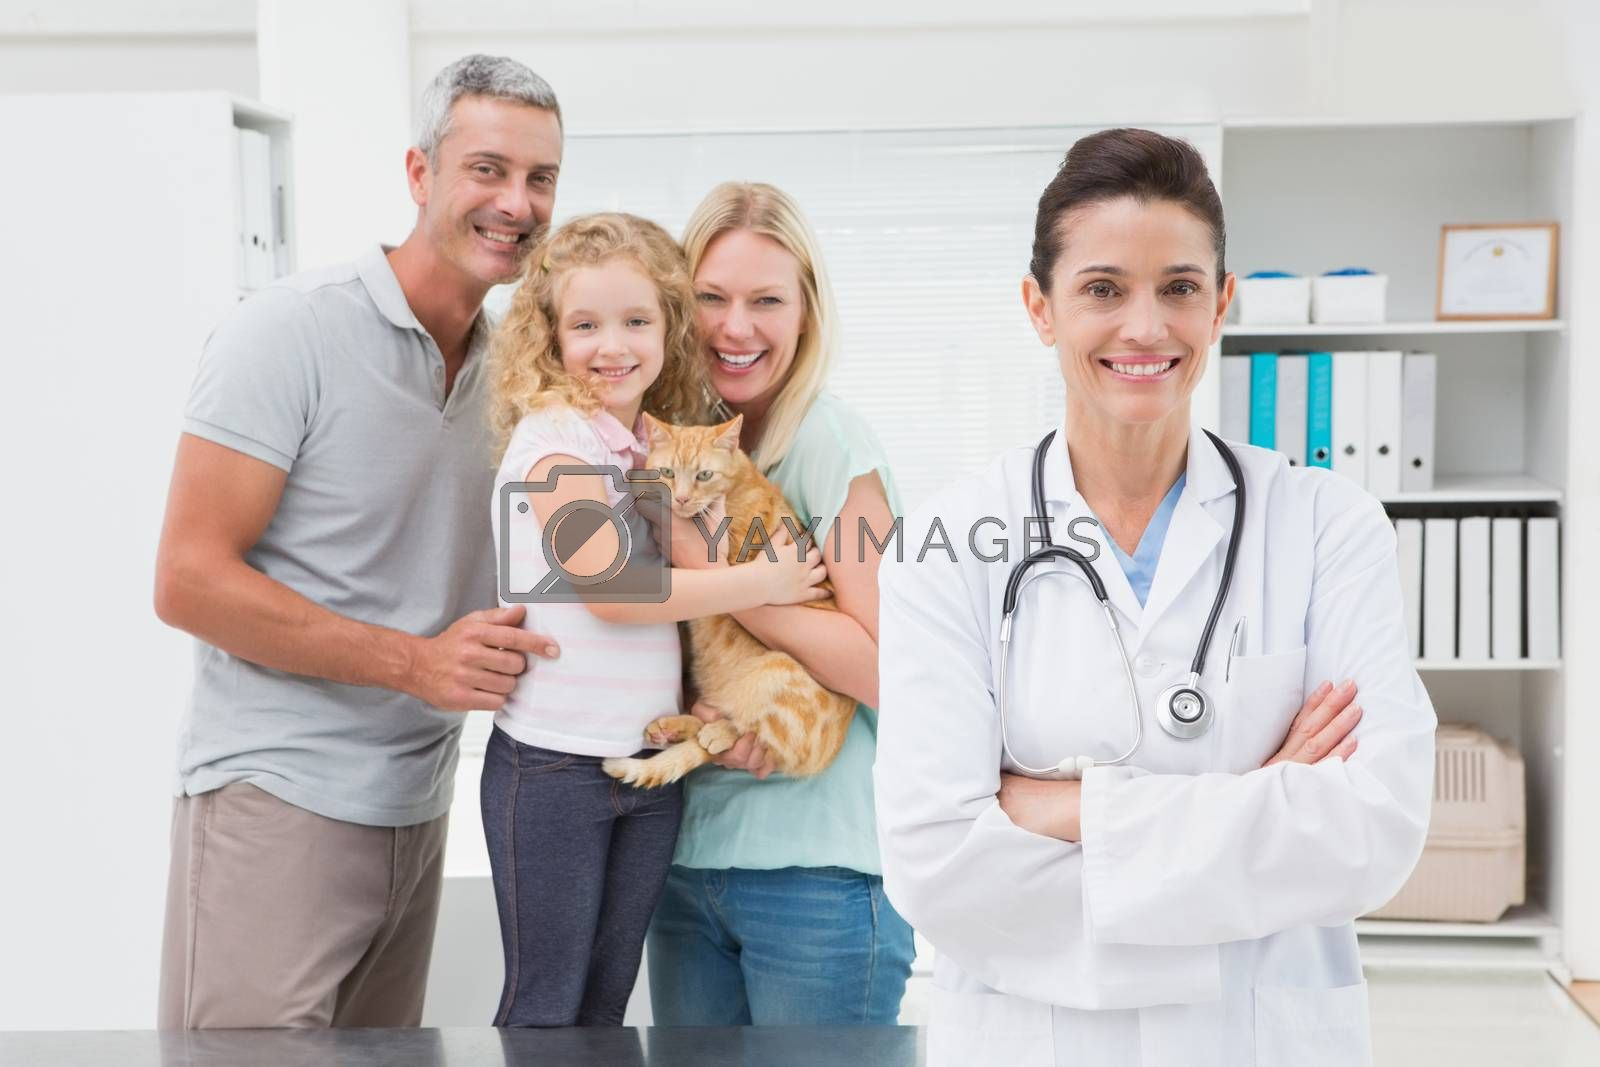 Veterinarian and cat owners smiling at camera in medical office